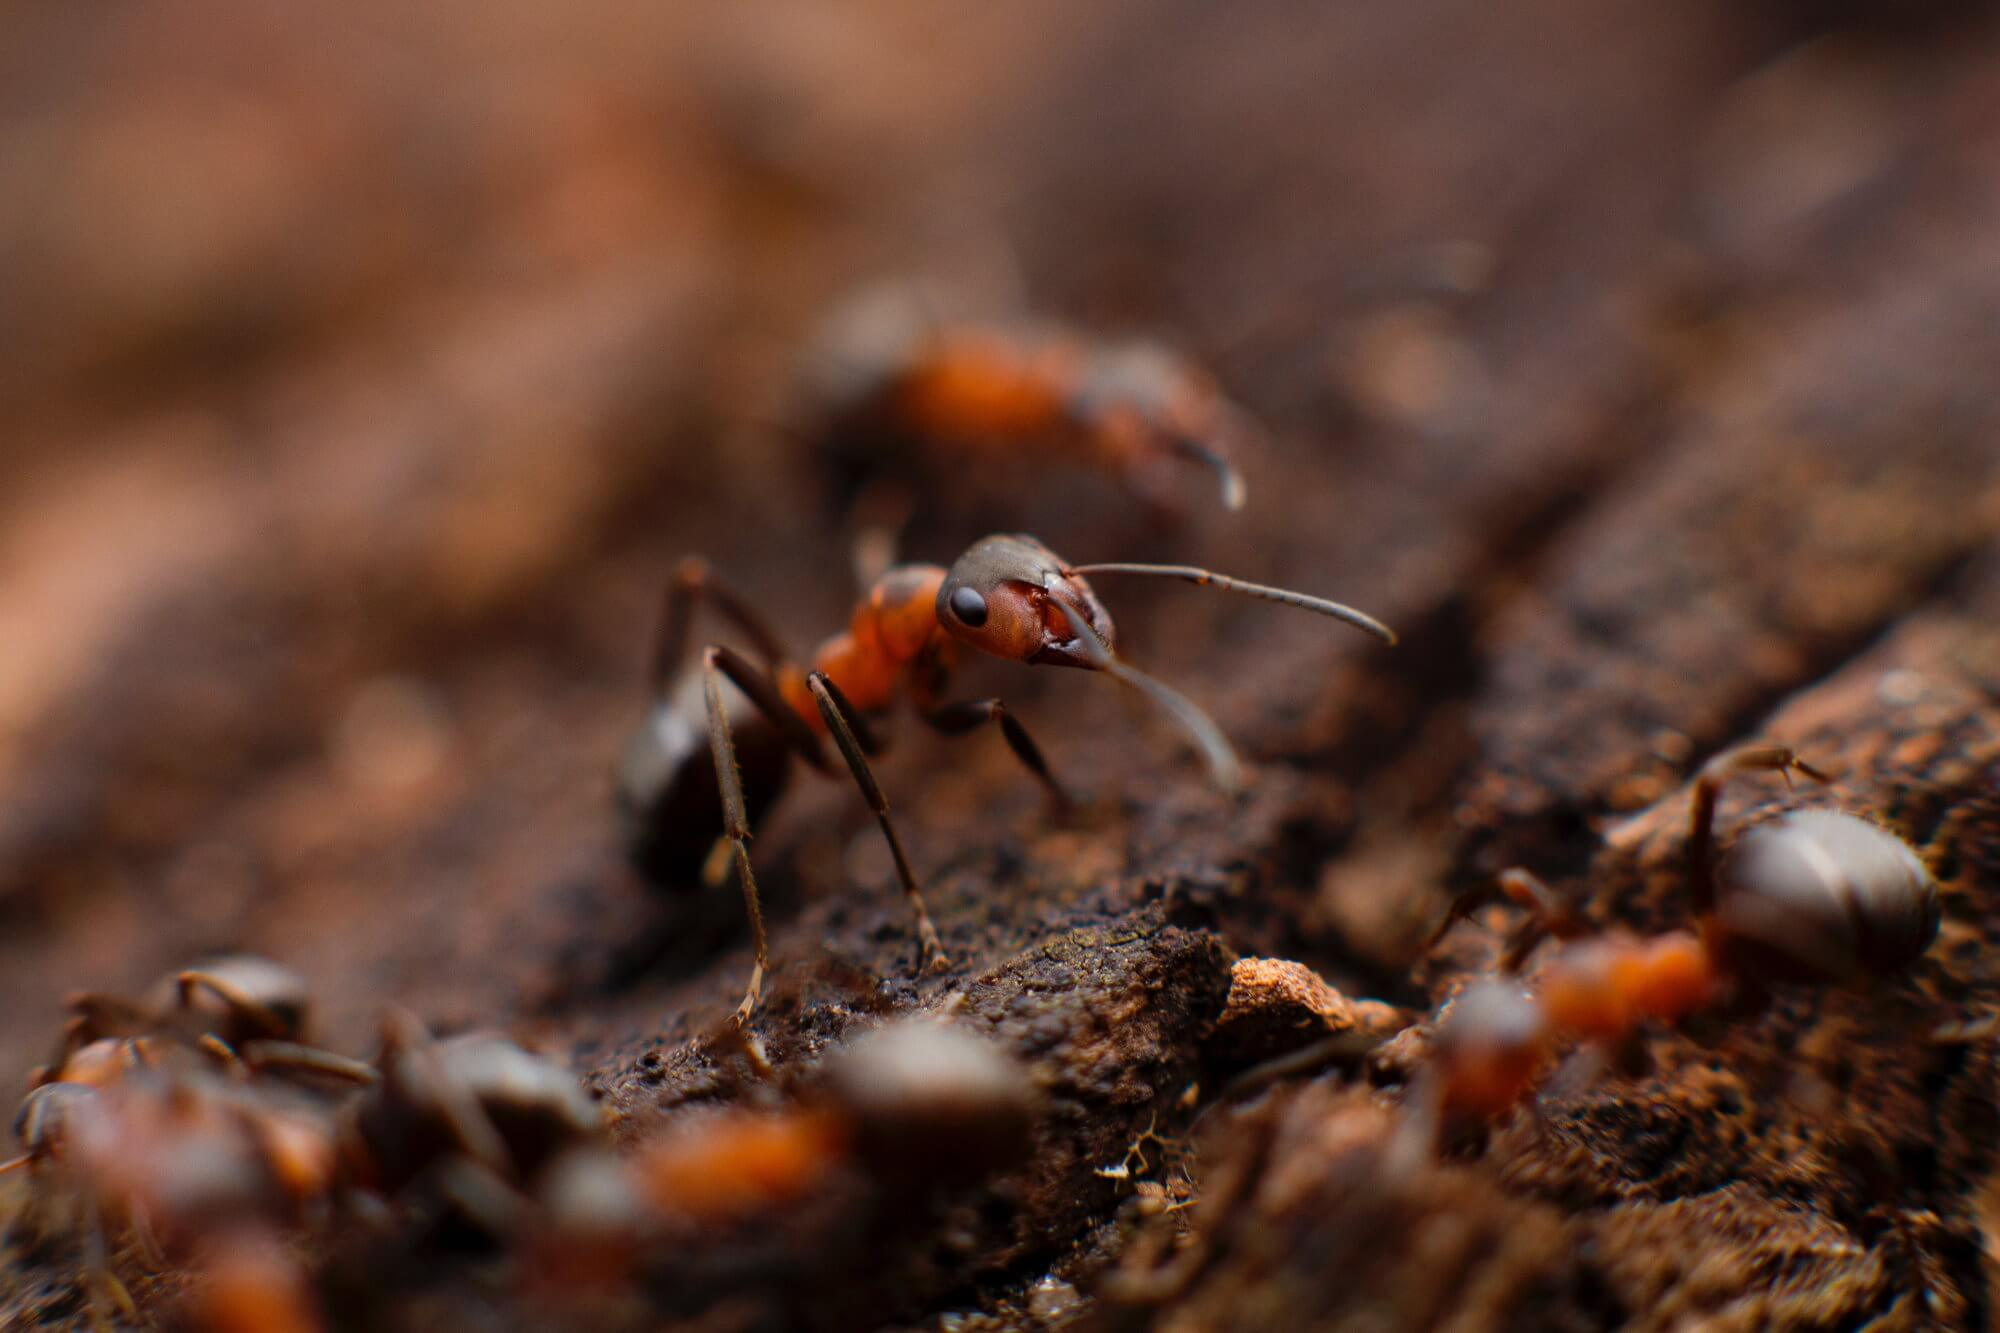 The ants survived for years in an abandoned bunker with no light and food